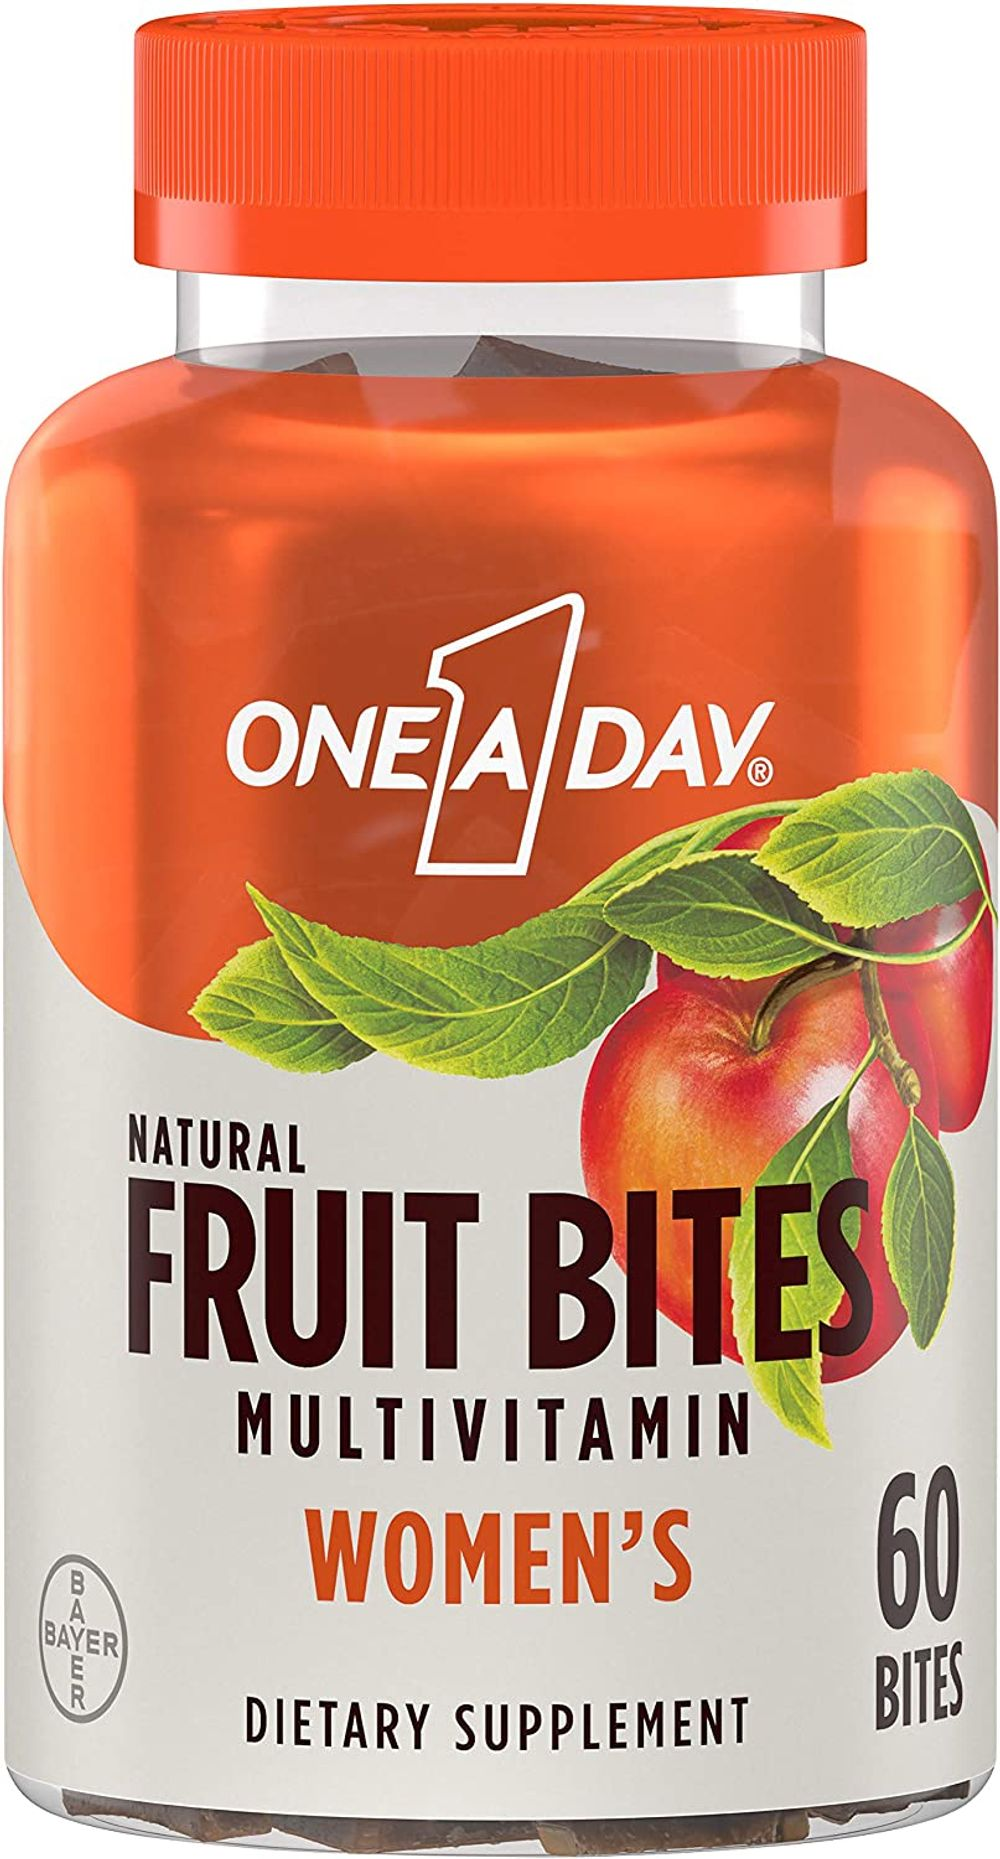 One A Day Women's Natural Fruit Bites Multivitamin with Immune Health Support, 60 Count (1 Month Supply), Gluten Free Vitamins with Vitamin A, Vitamin D, Vitamin E, B6, B12, Biotin & More